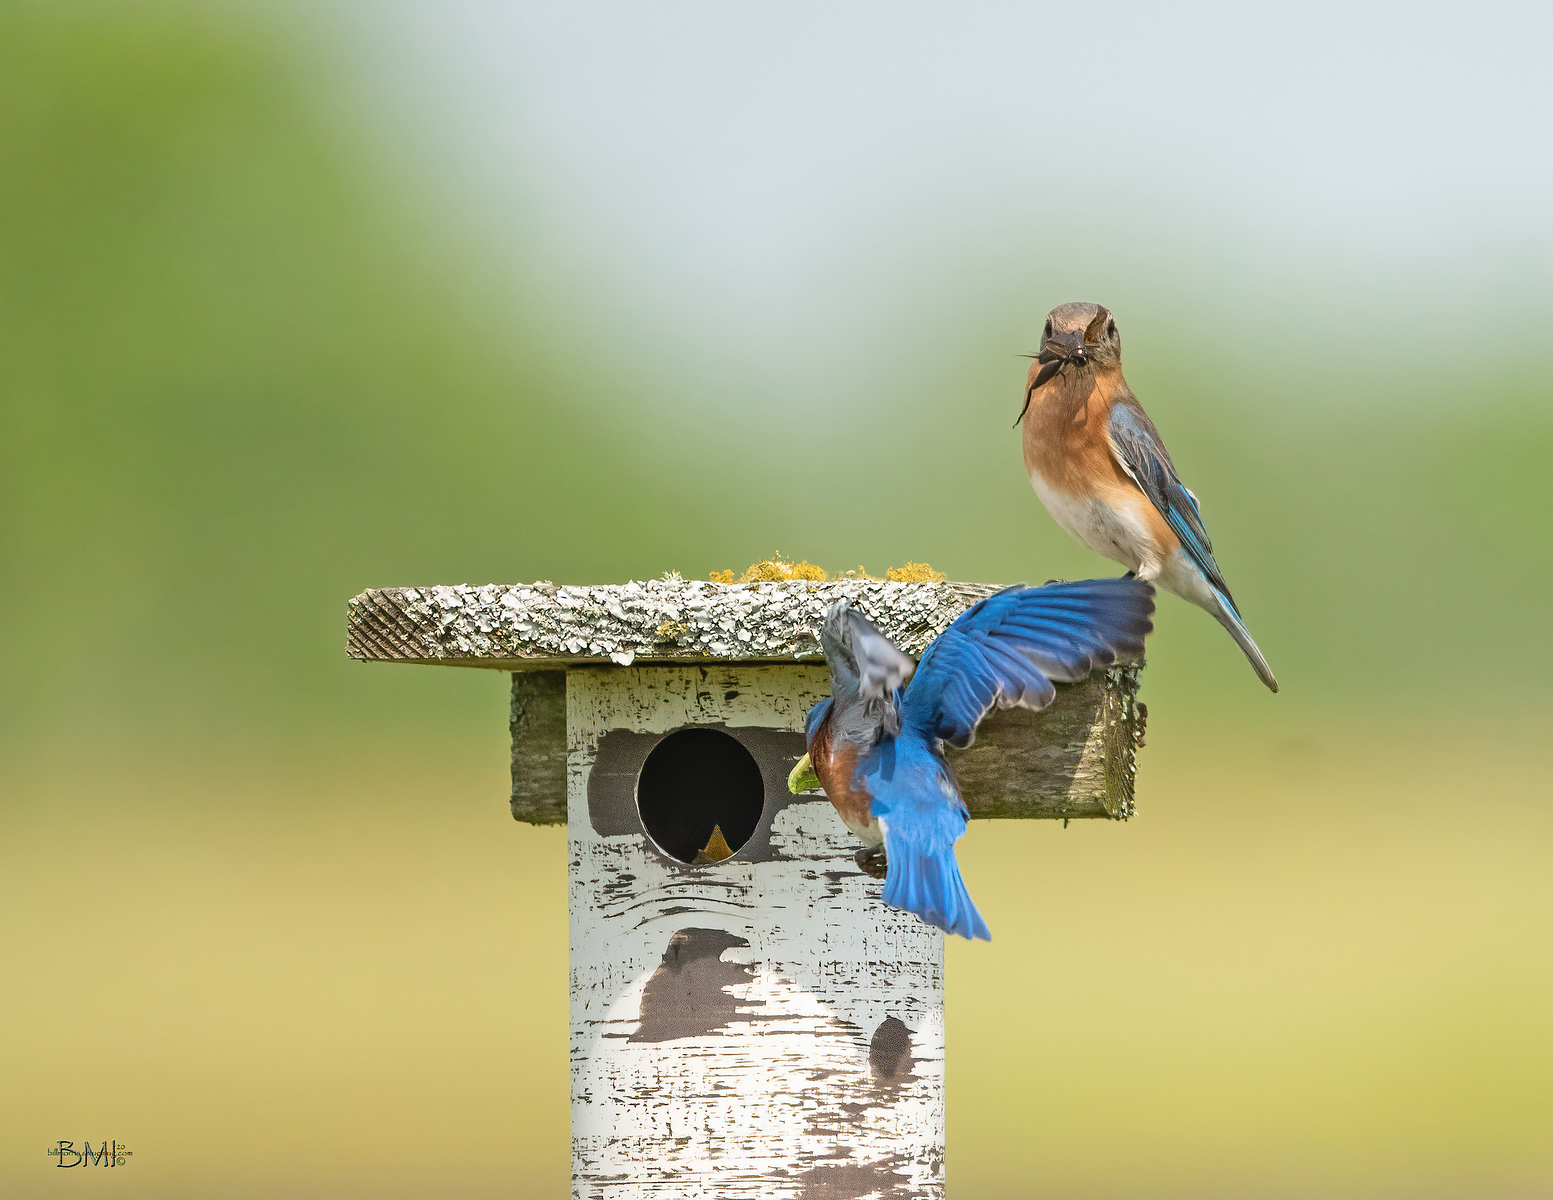 IMAGE: https://photos.smugmug.com/Beautyinthetreesandintheair/Eastern-bluebirds-Spring-2020/i-tCjNKff/0/11a09078/X3/Eastern%20bluebird_9_3-27-2020-70-X3.jpg